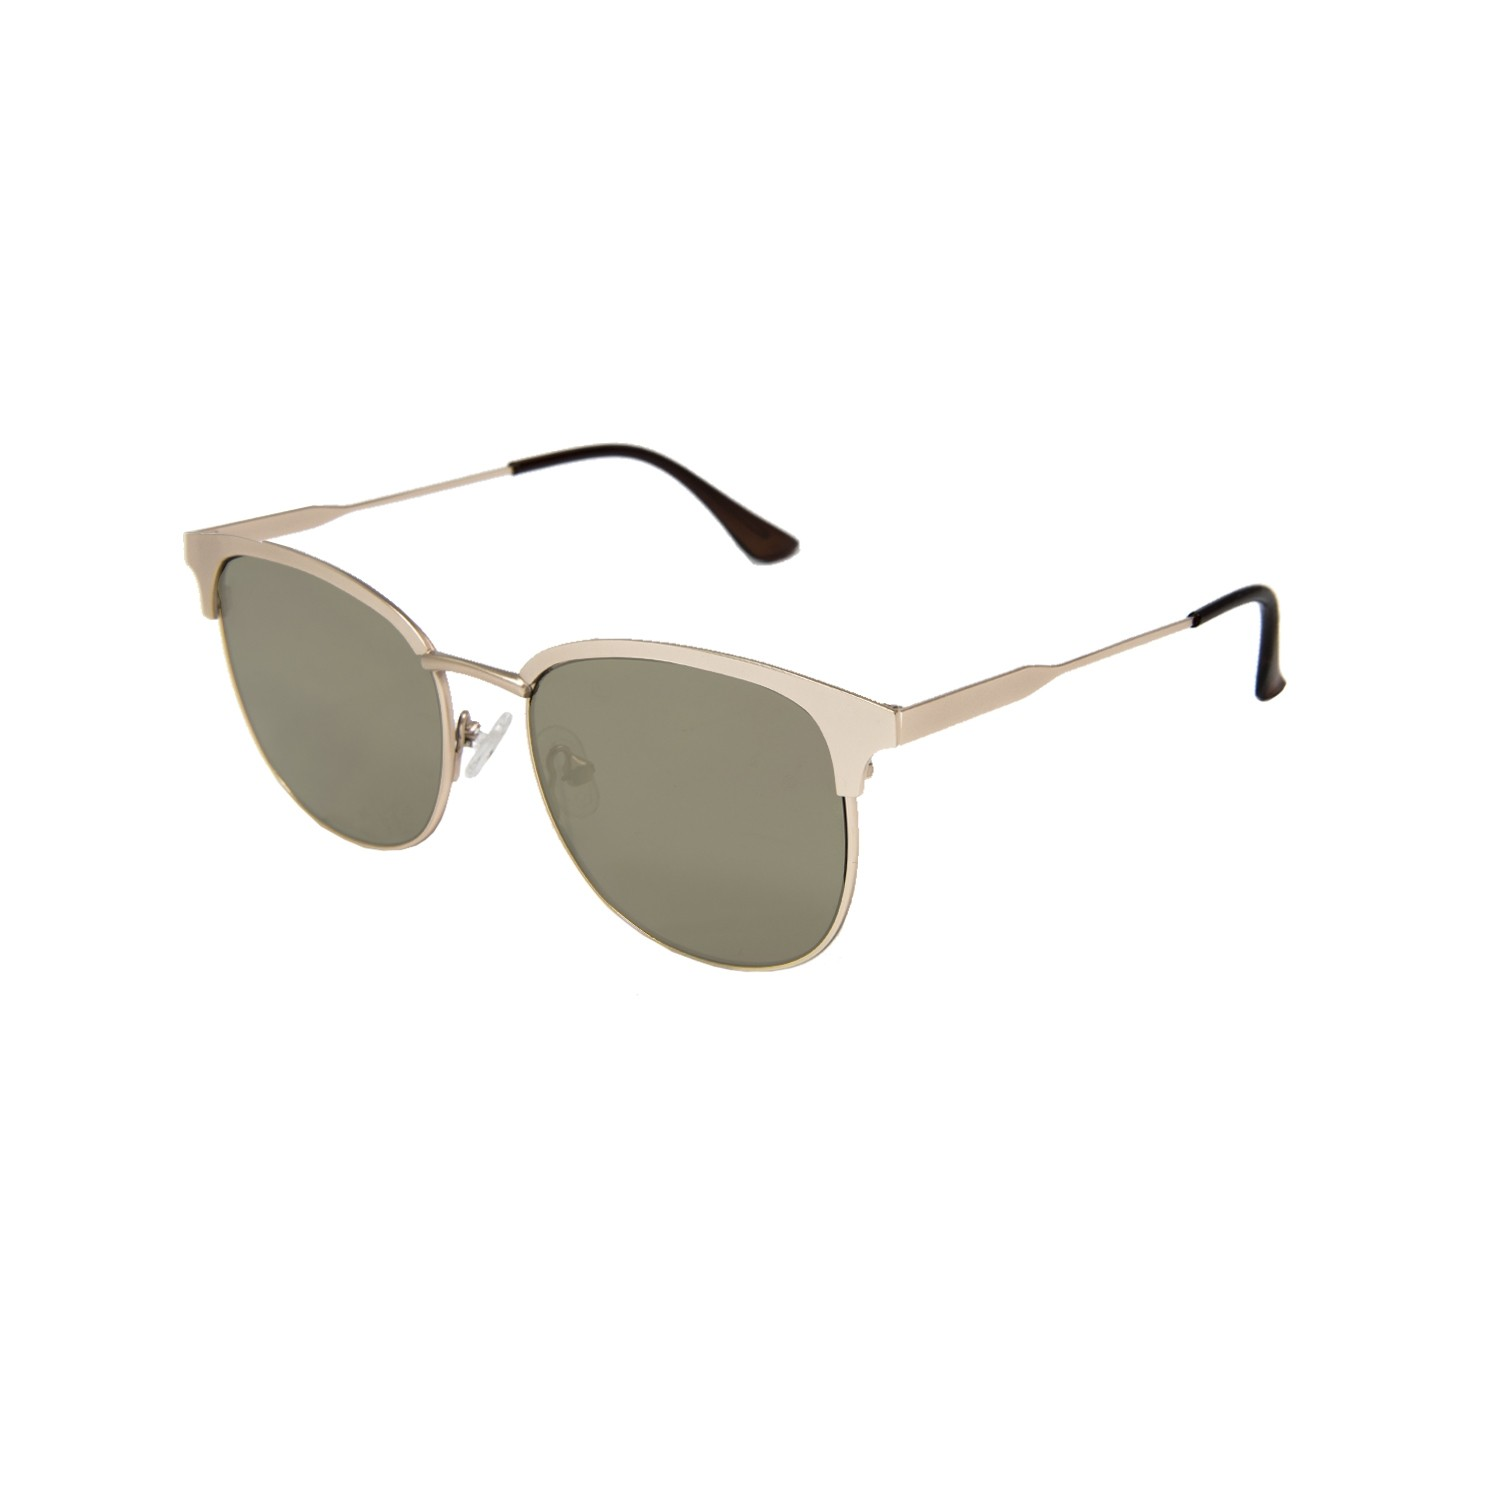 MADISON shiny gold frame with flat revo gold lens